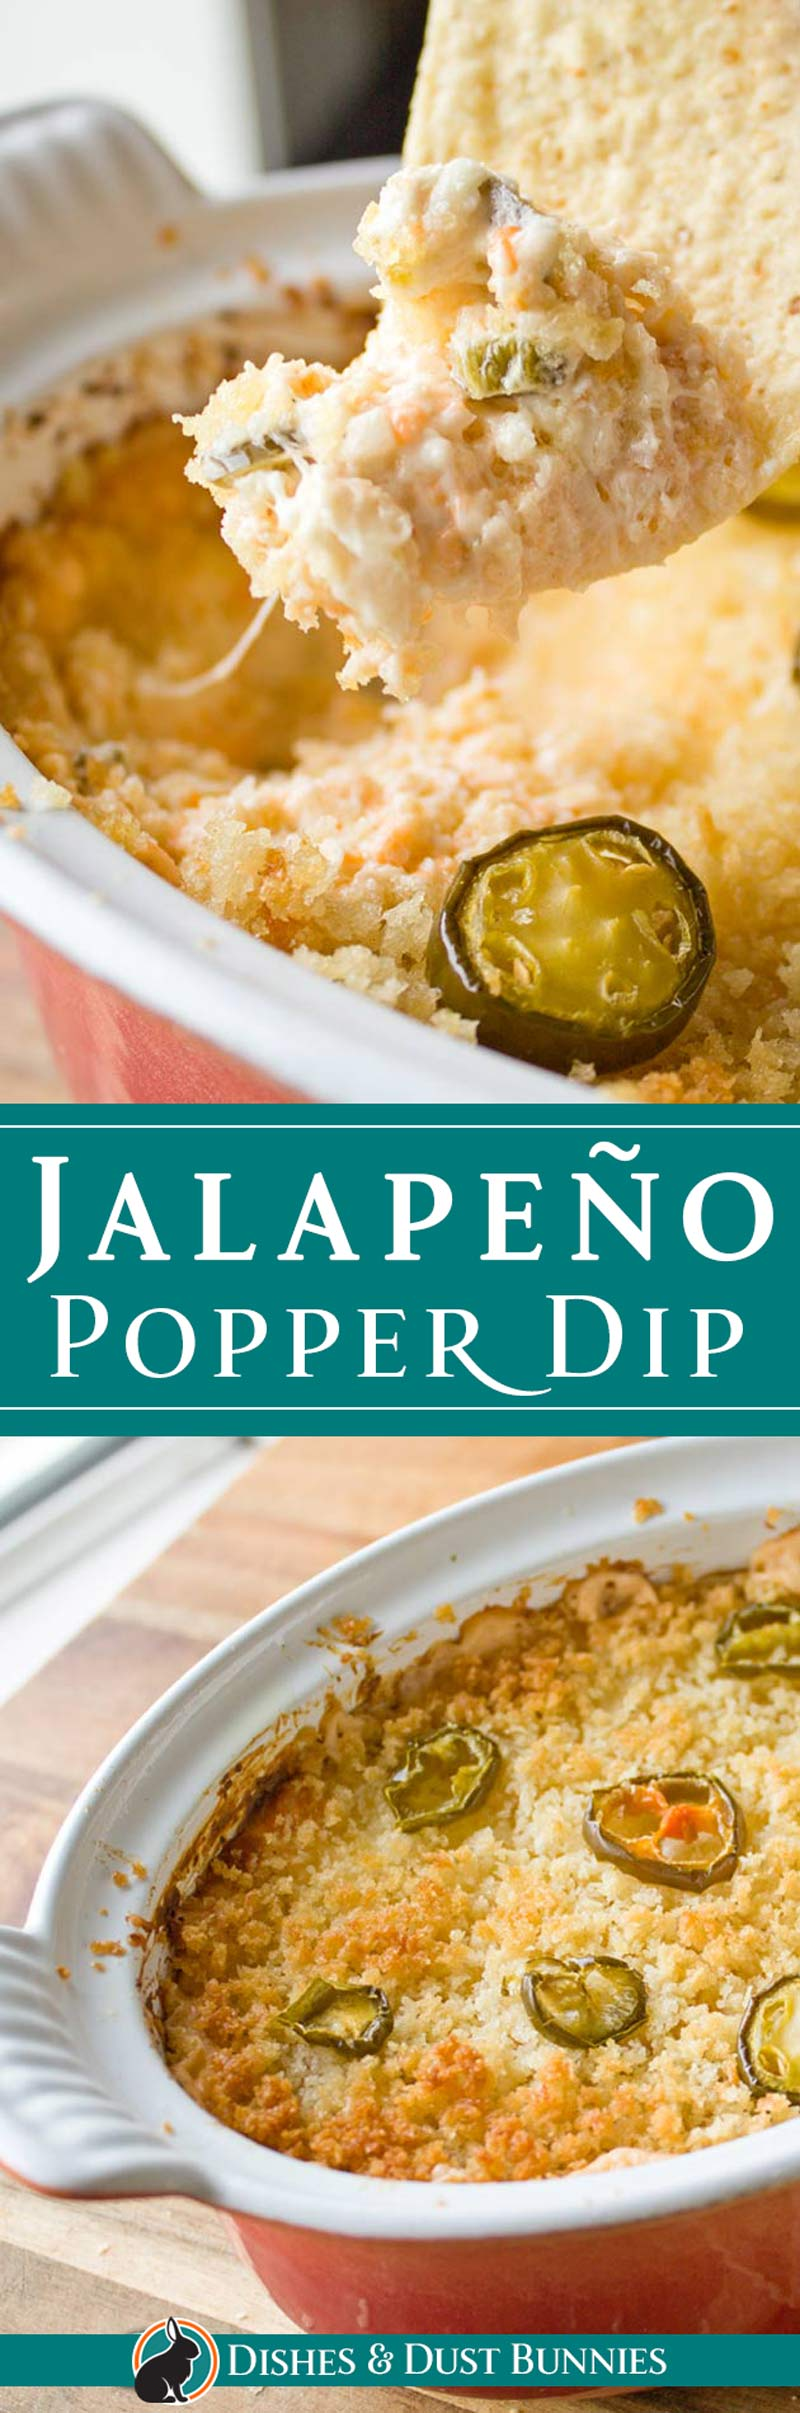 Jalapeno Popper Dip from dishesanddustbunnies.com